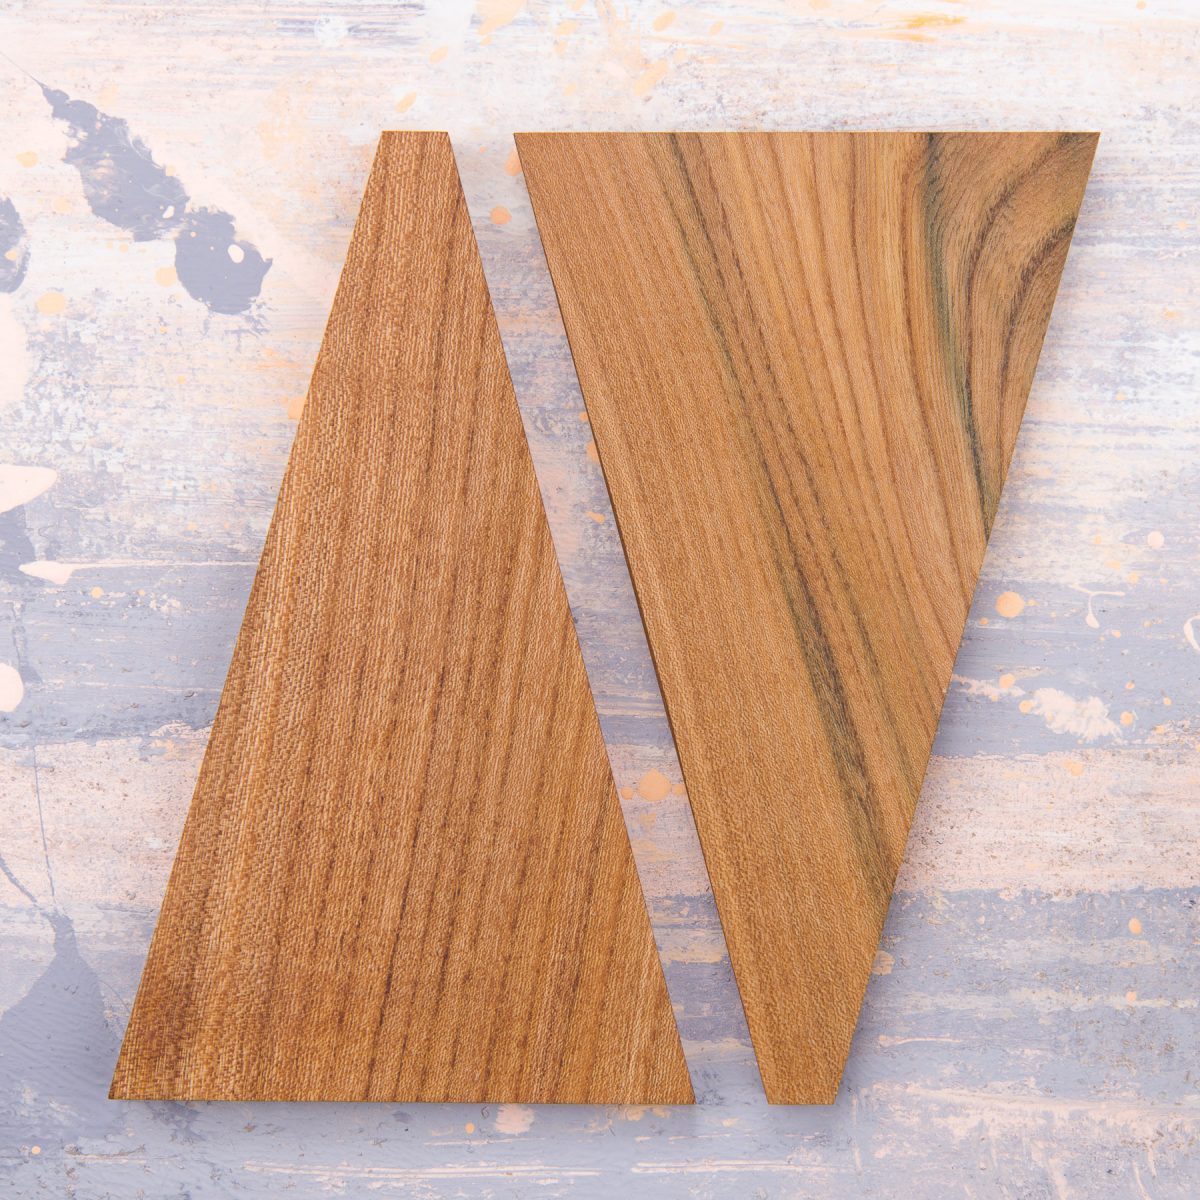 Jan Hendzel Studio samples elm